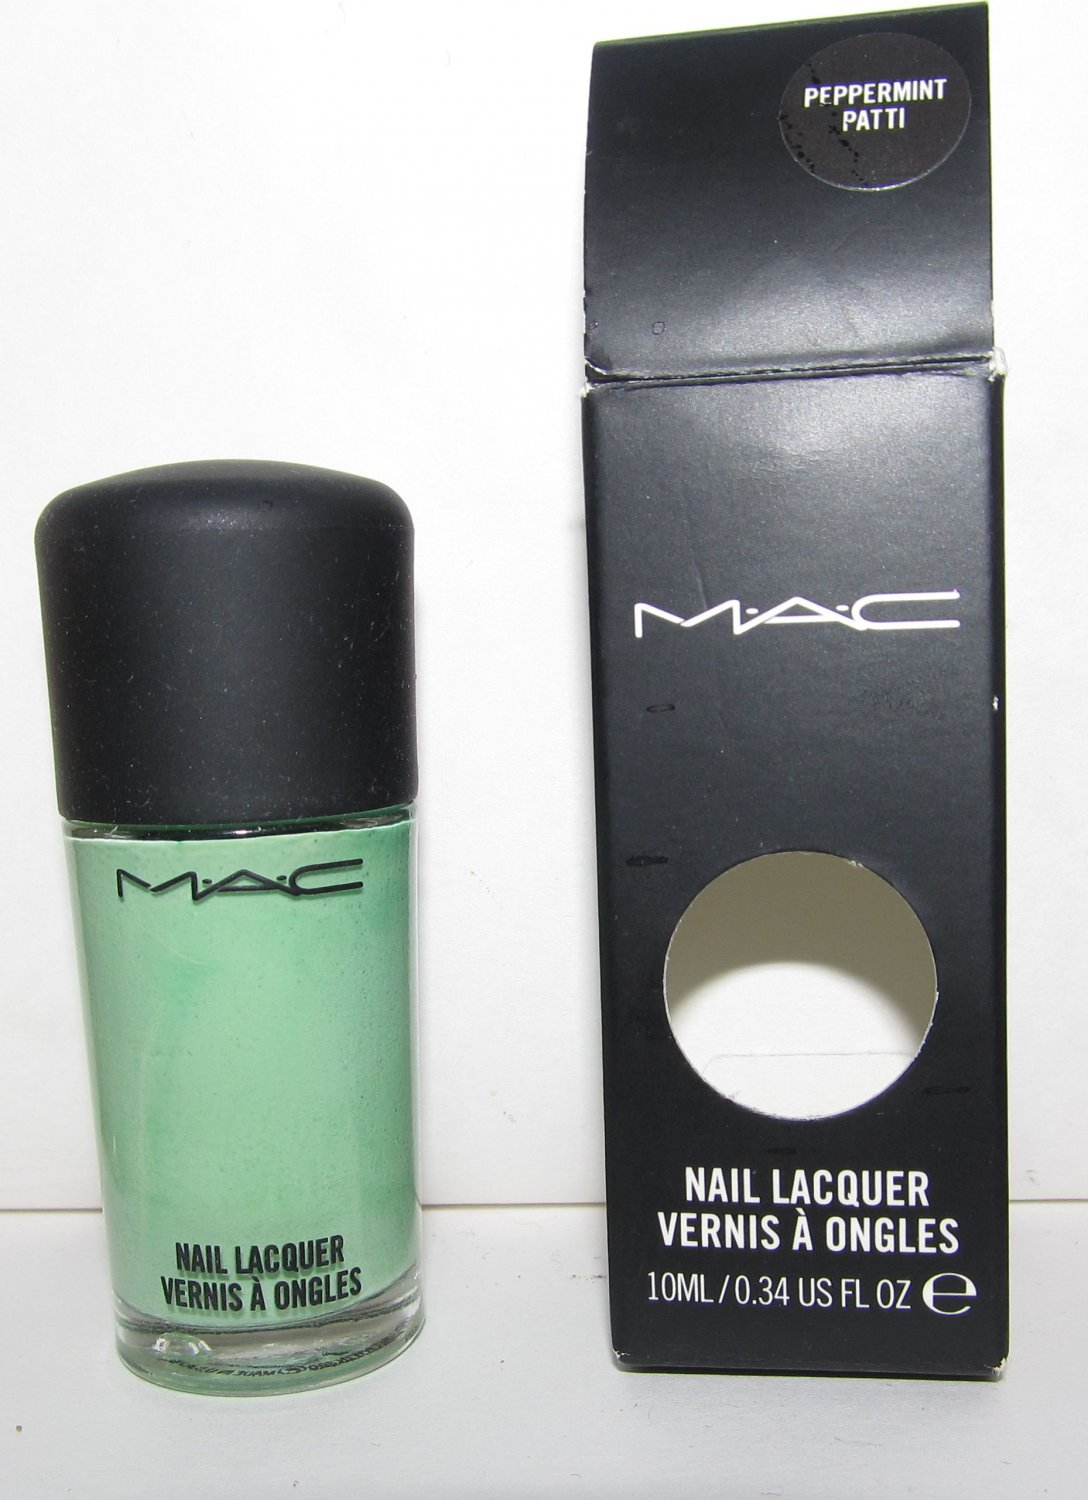 MAC - Peppermint Patti Nail Polish - NIB